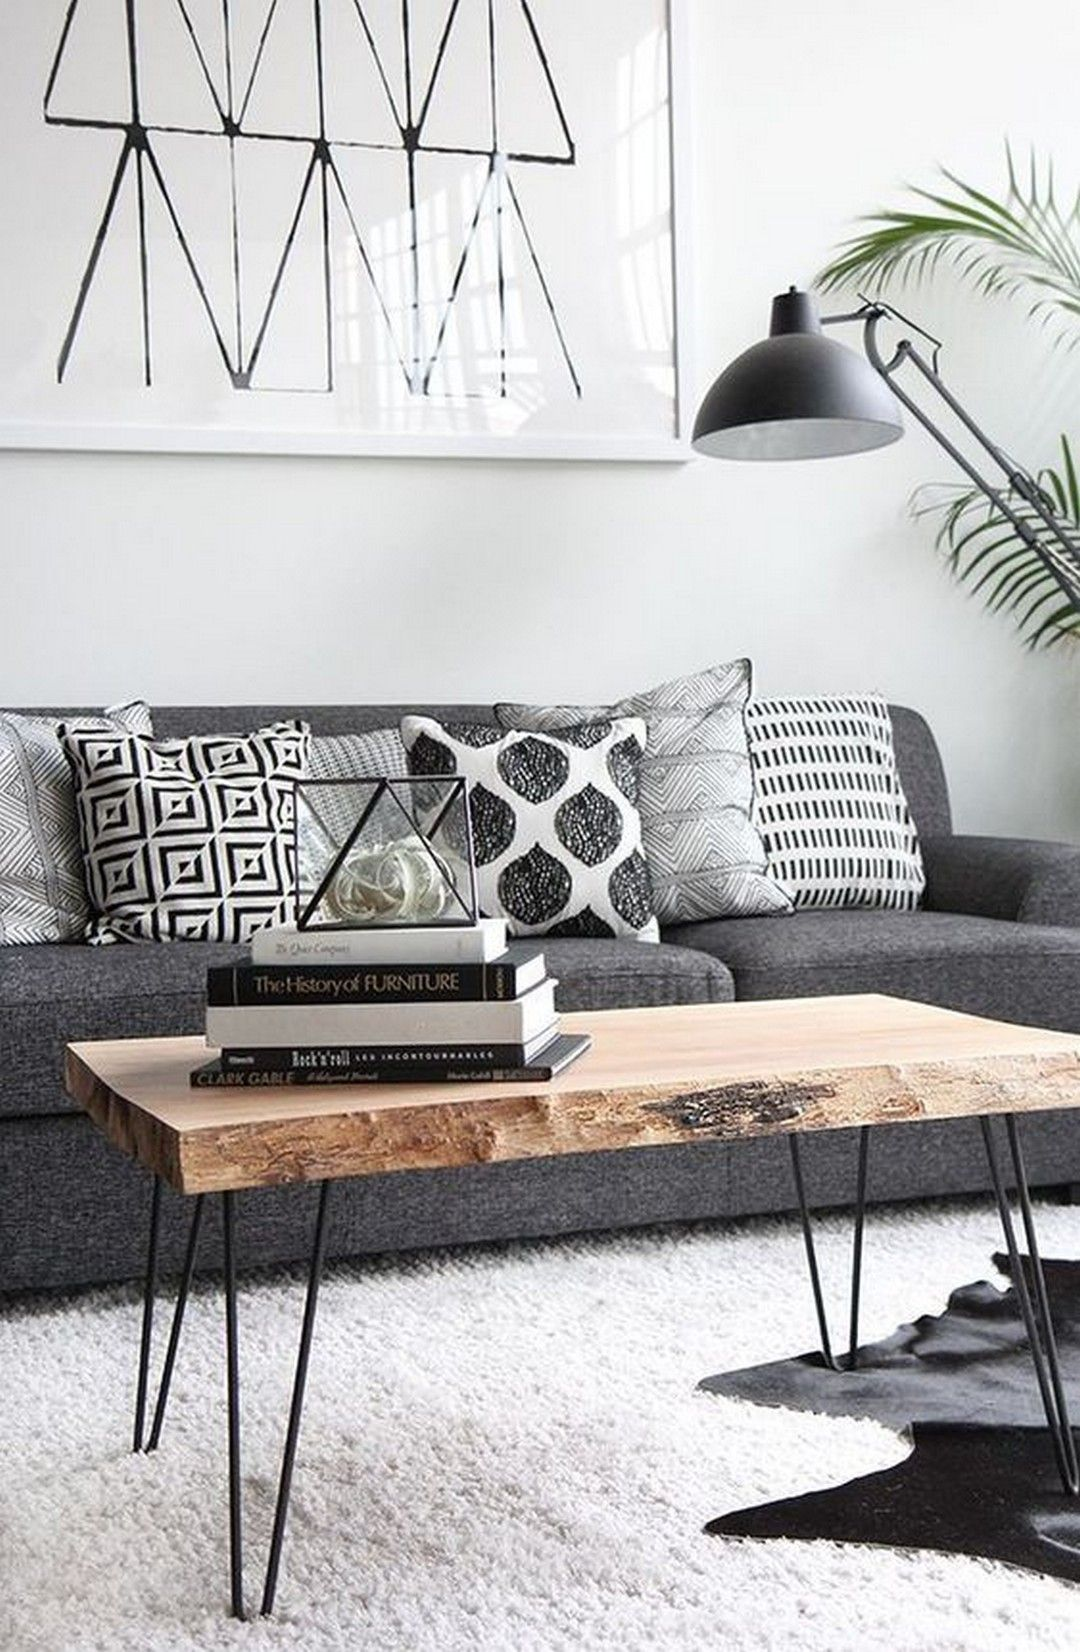 10 Easy Ways of Decorating Room with These Living Room Pictures images